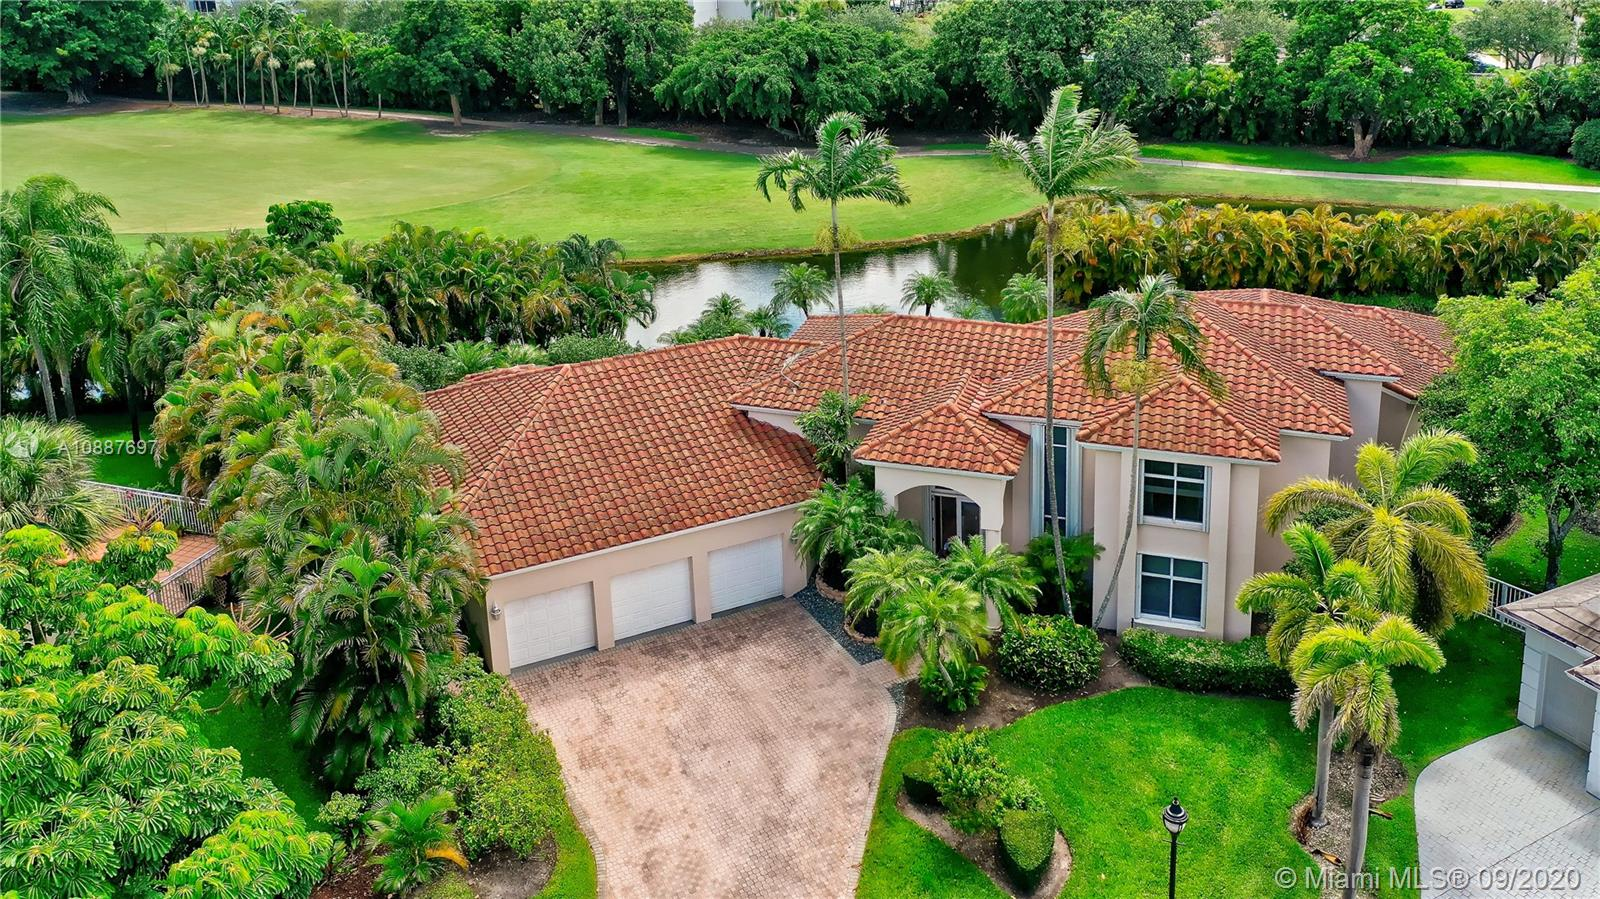 5484 NW 94th Doral Pl  For Sale A10887697, FL